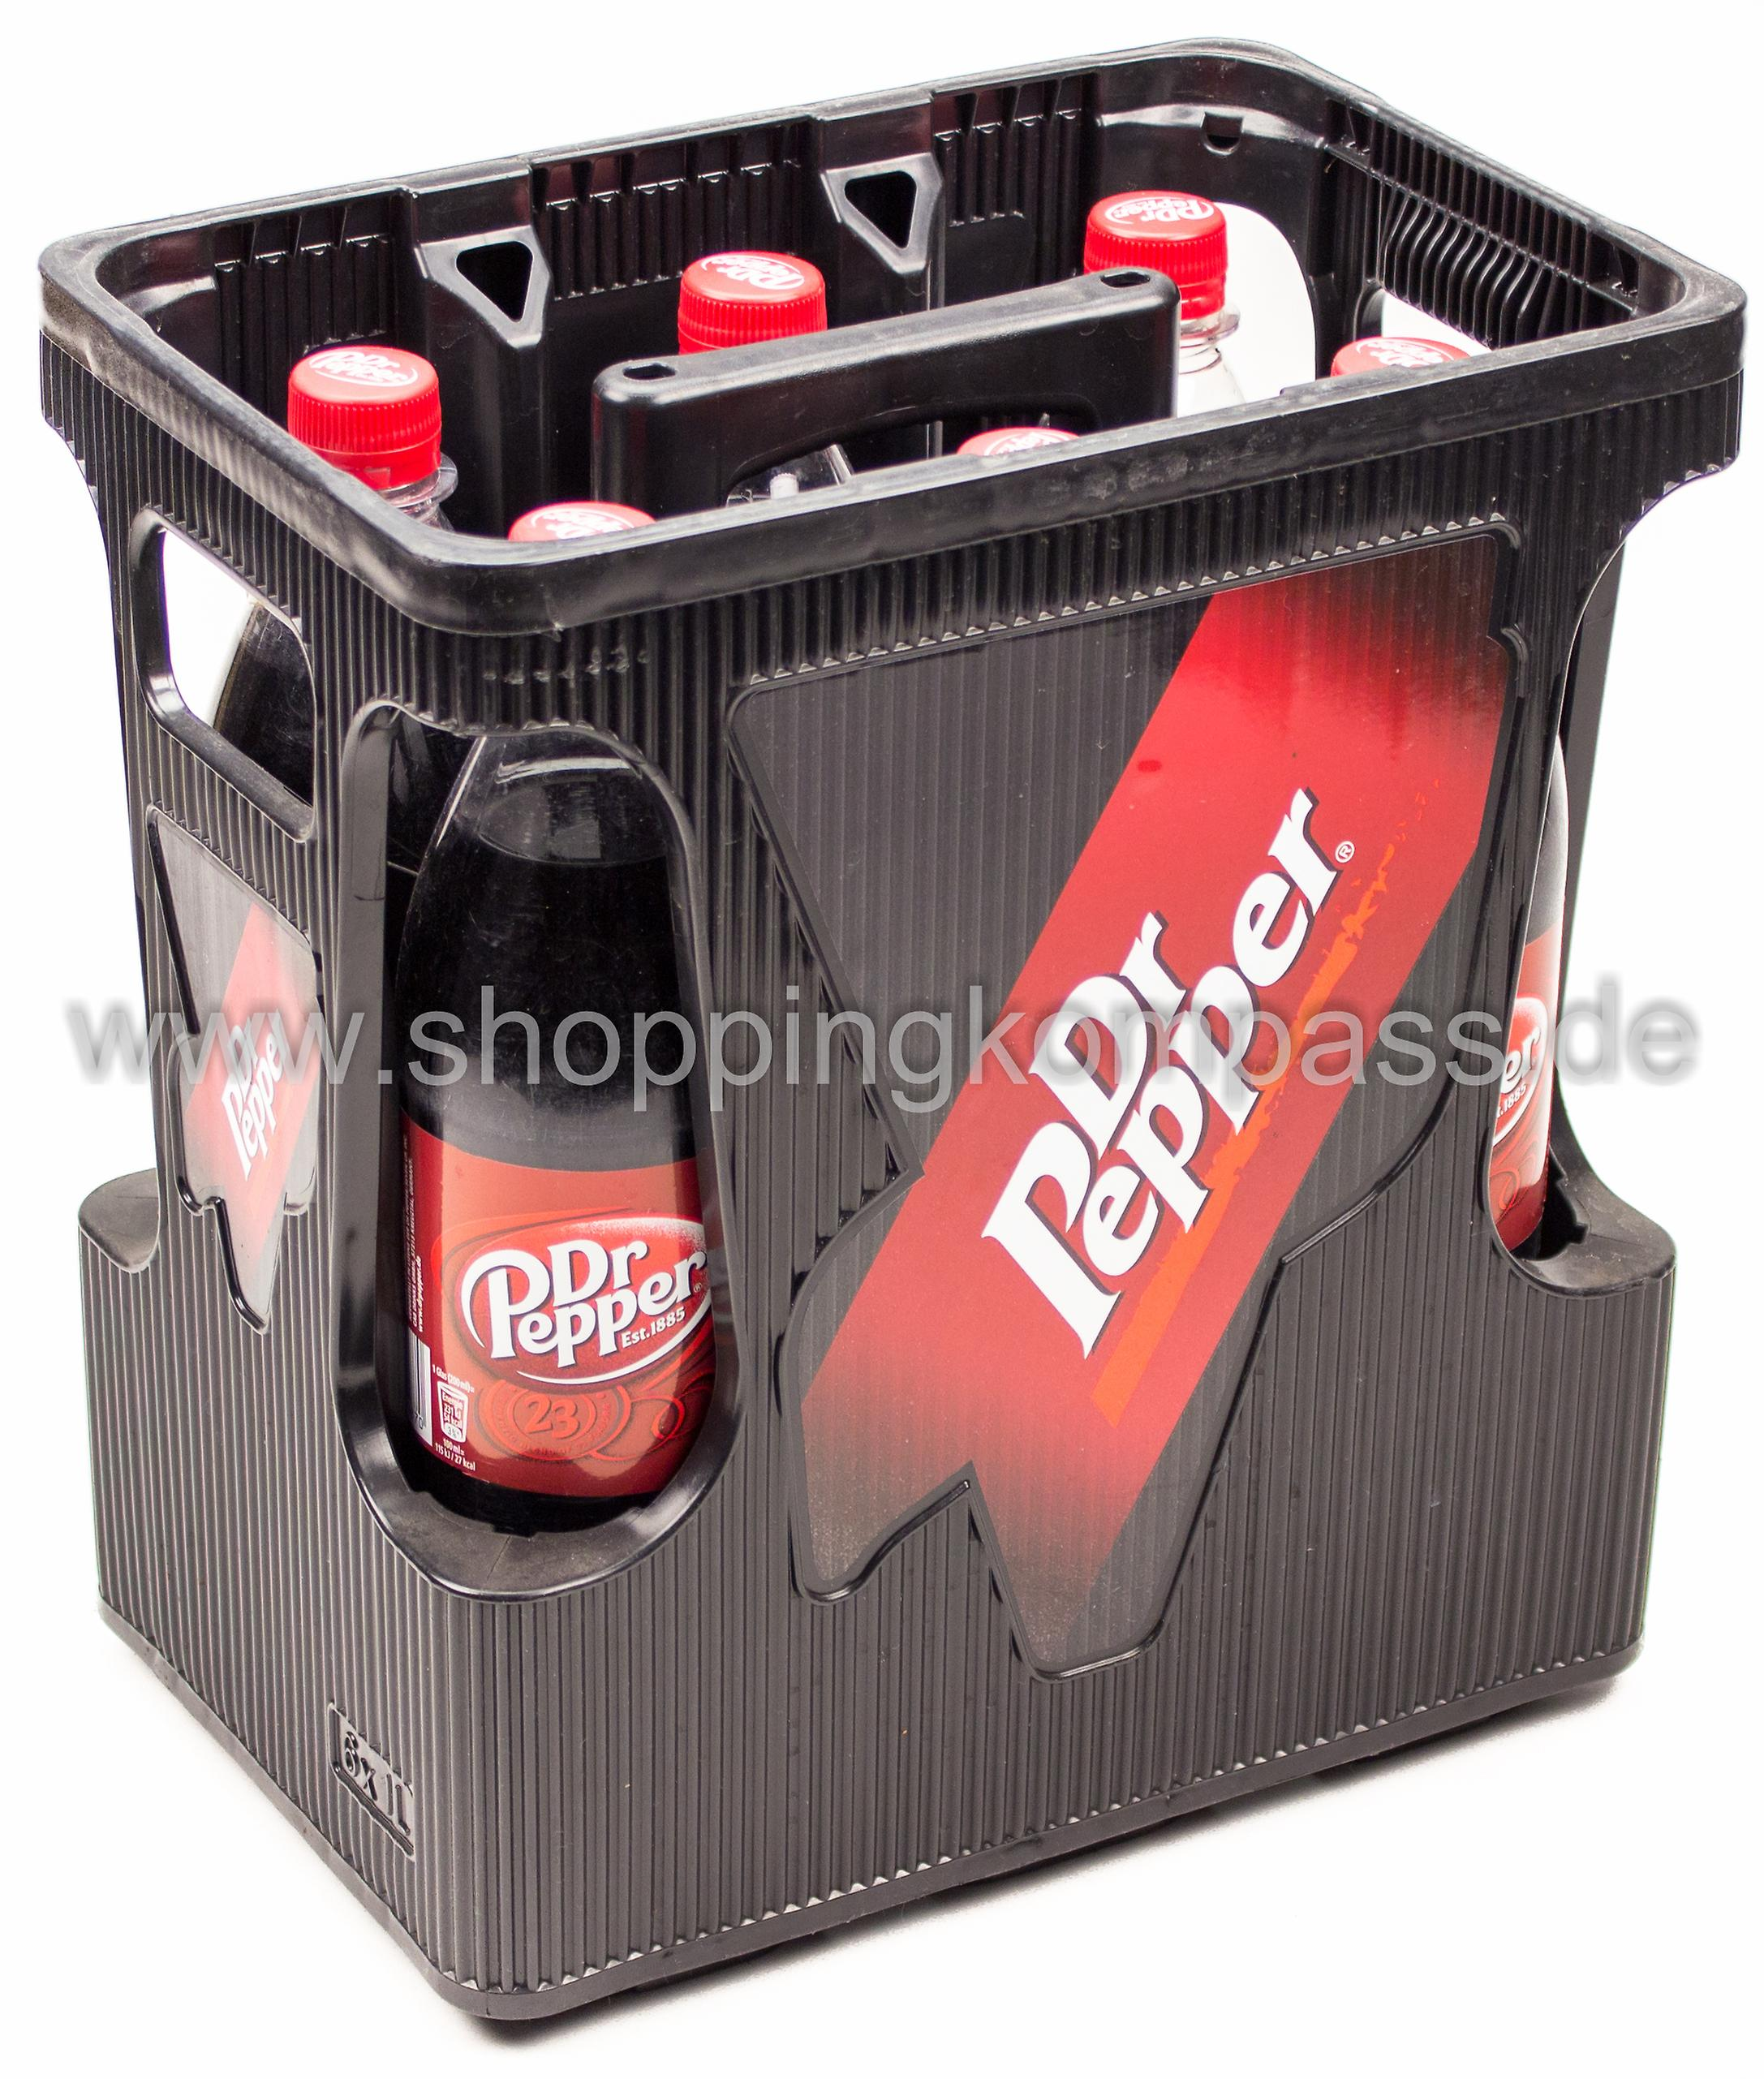 Dr. Pepper Kasten 6 x 1 l PET Mehrweg